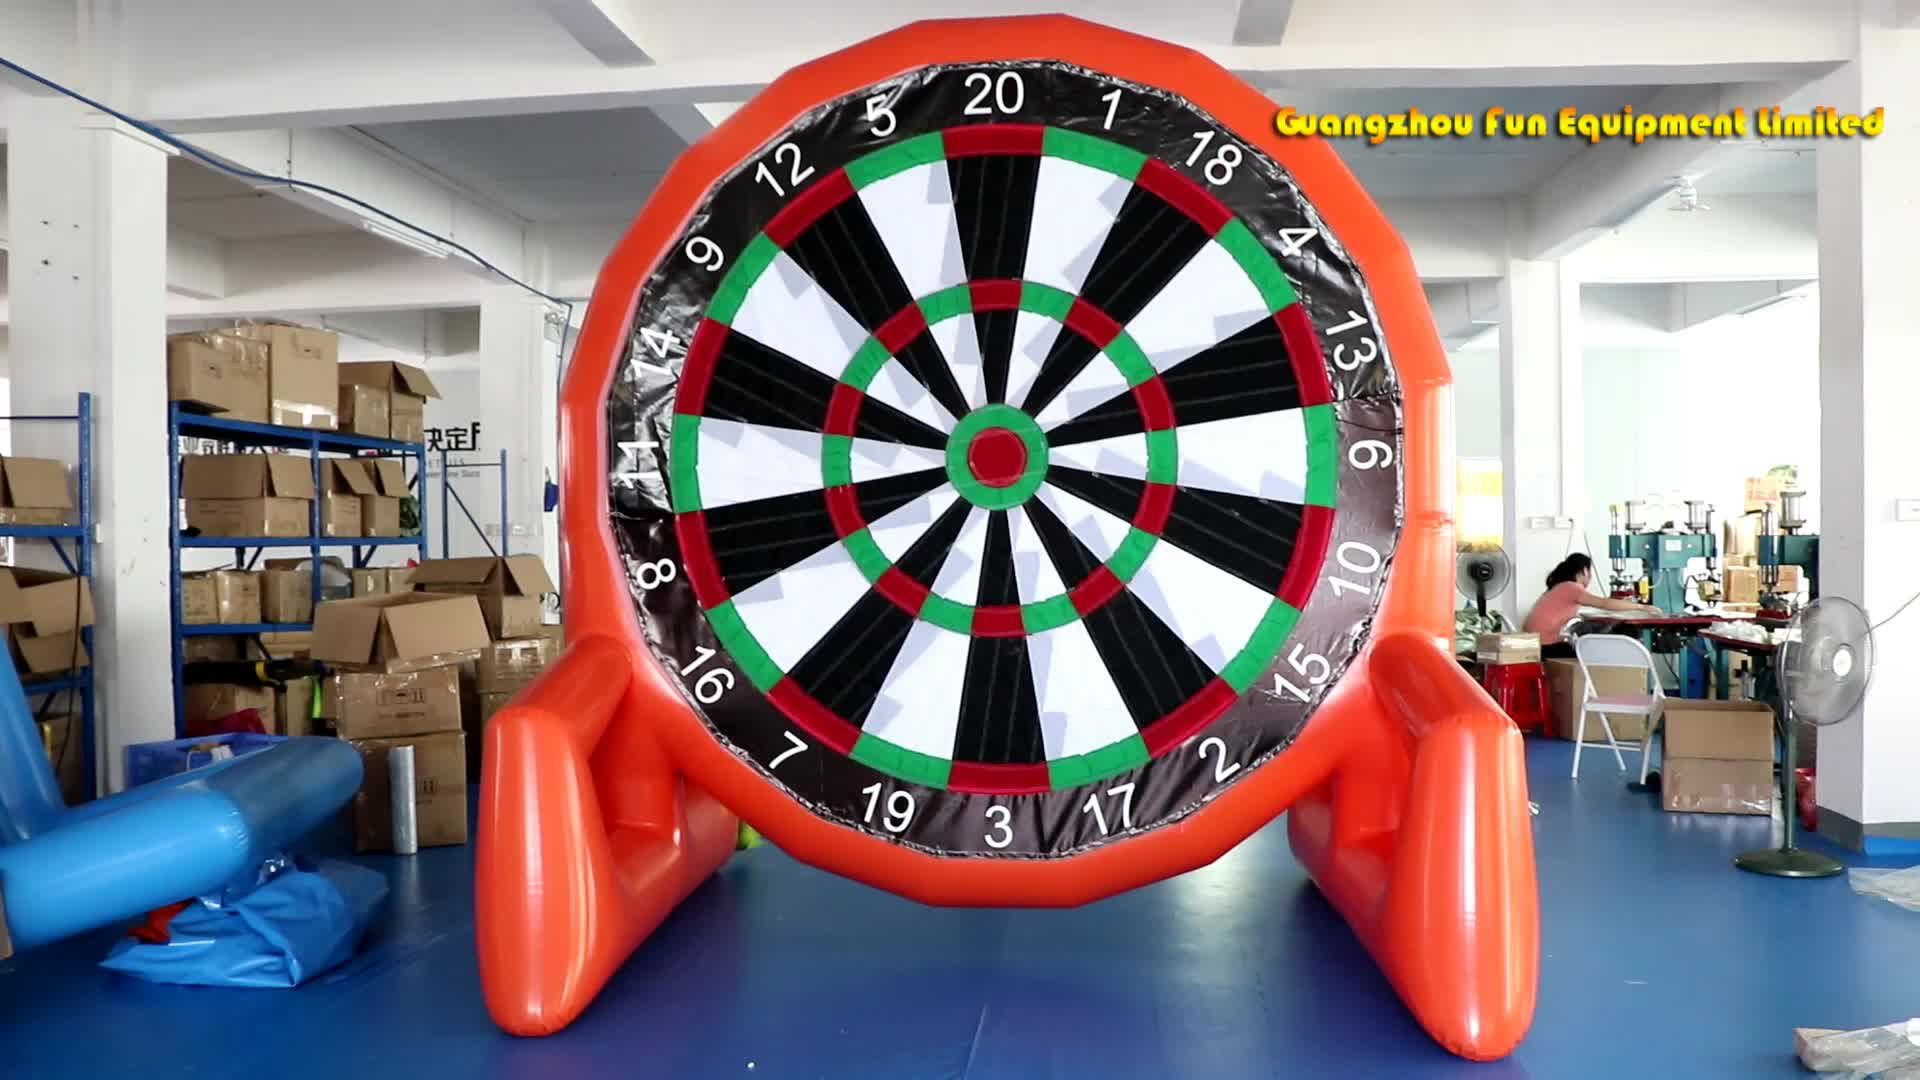 2.5mH Double sides PVC inflatable soccer dart board inflatable foot darts games inflatable sticky darts for sale